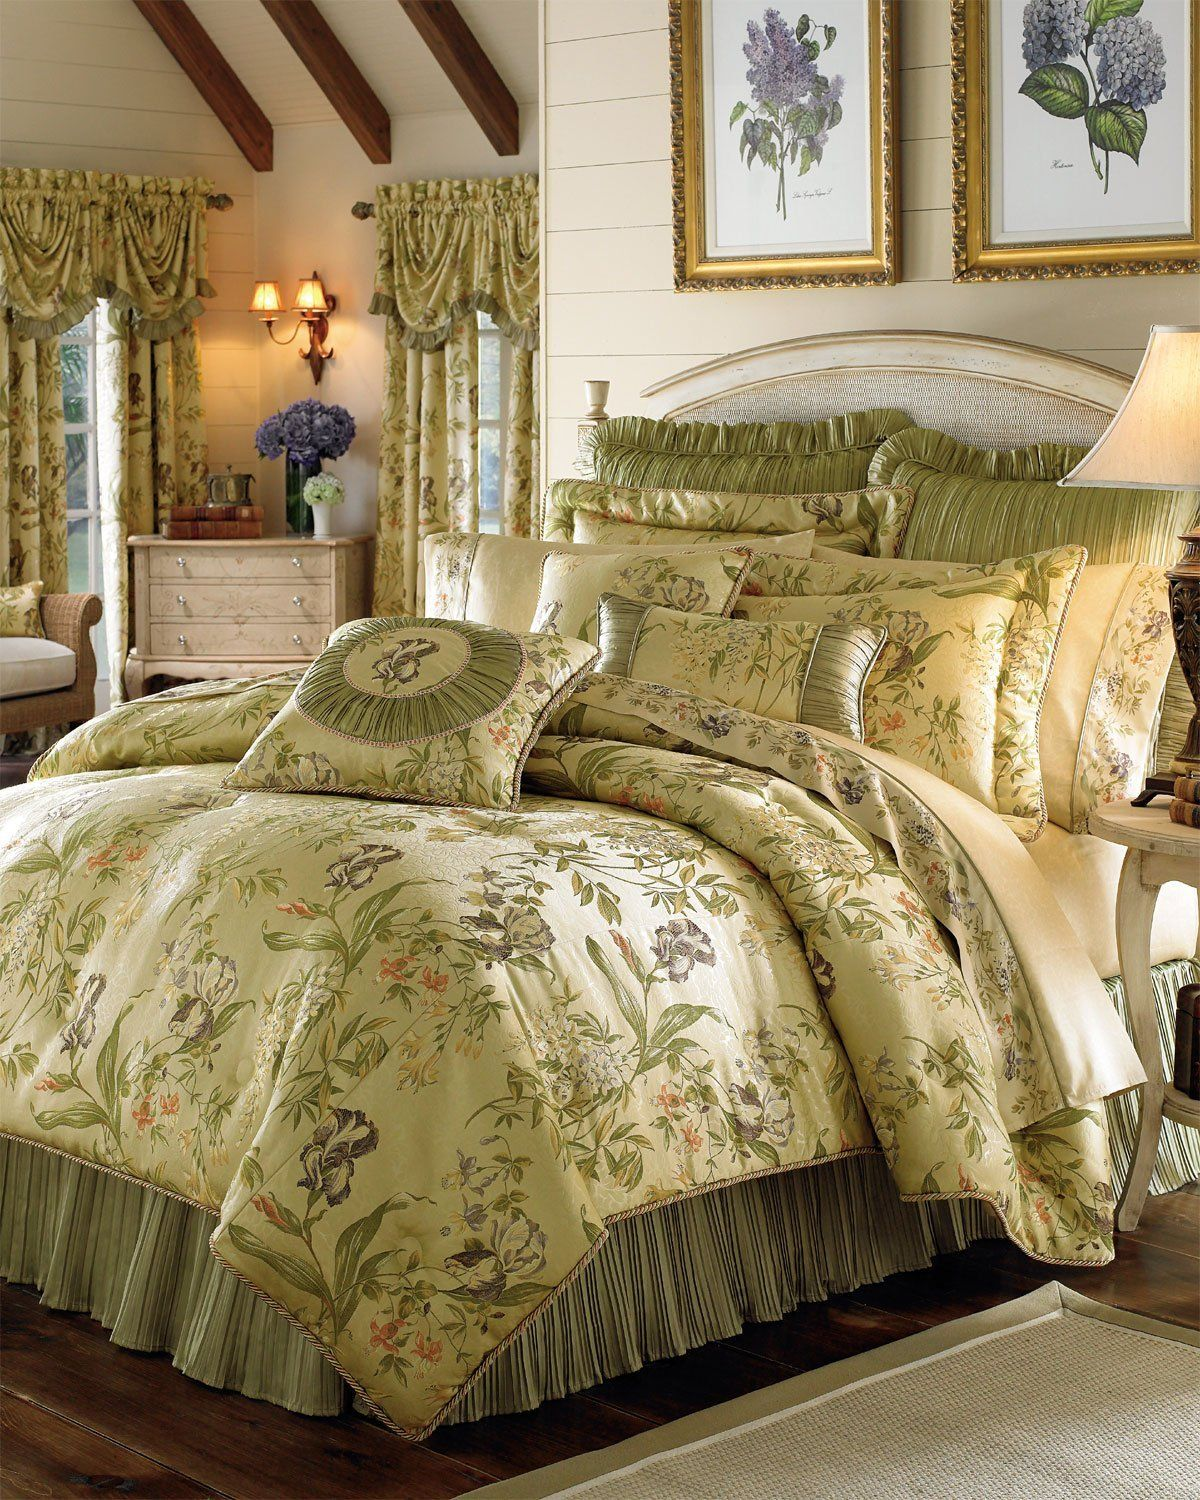 Croscill Rose Garden Comforter Set - Garden Inspiration